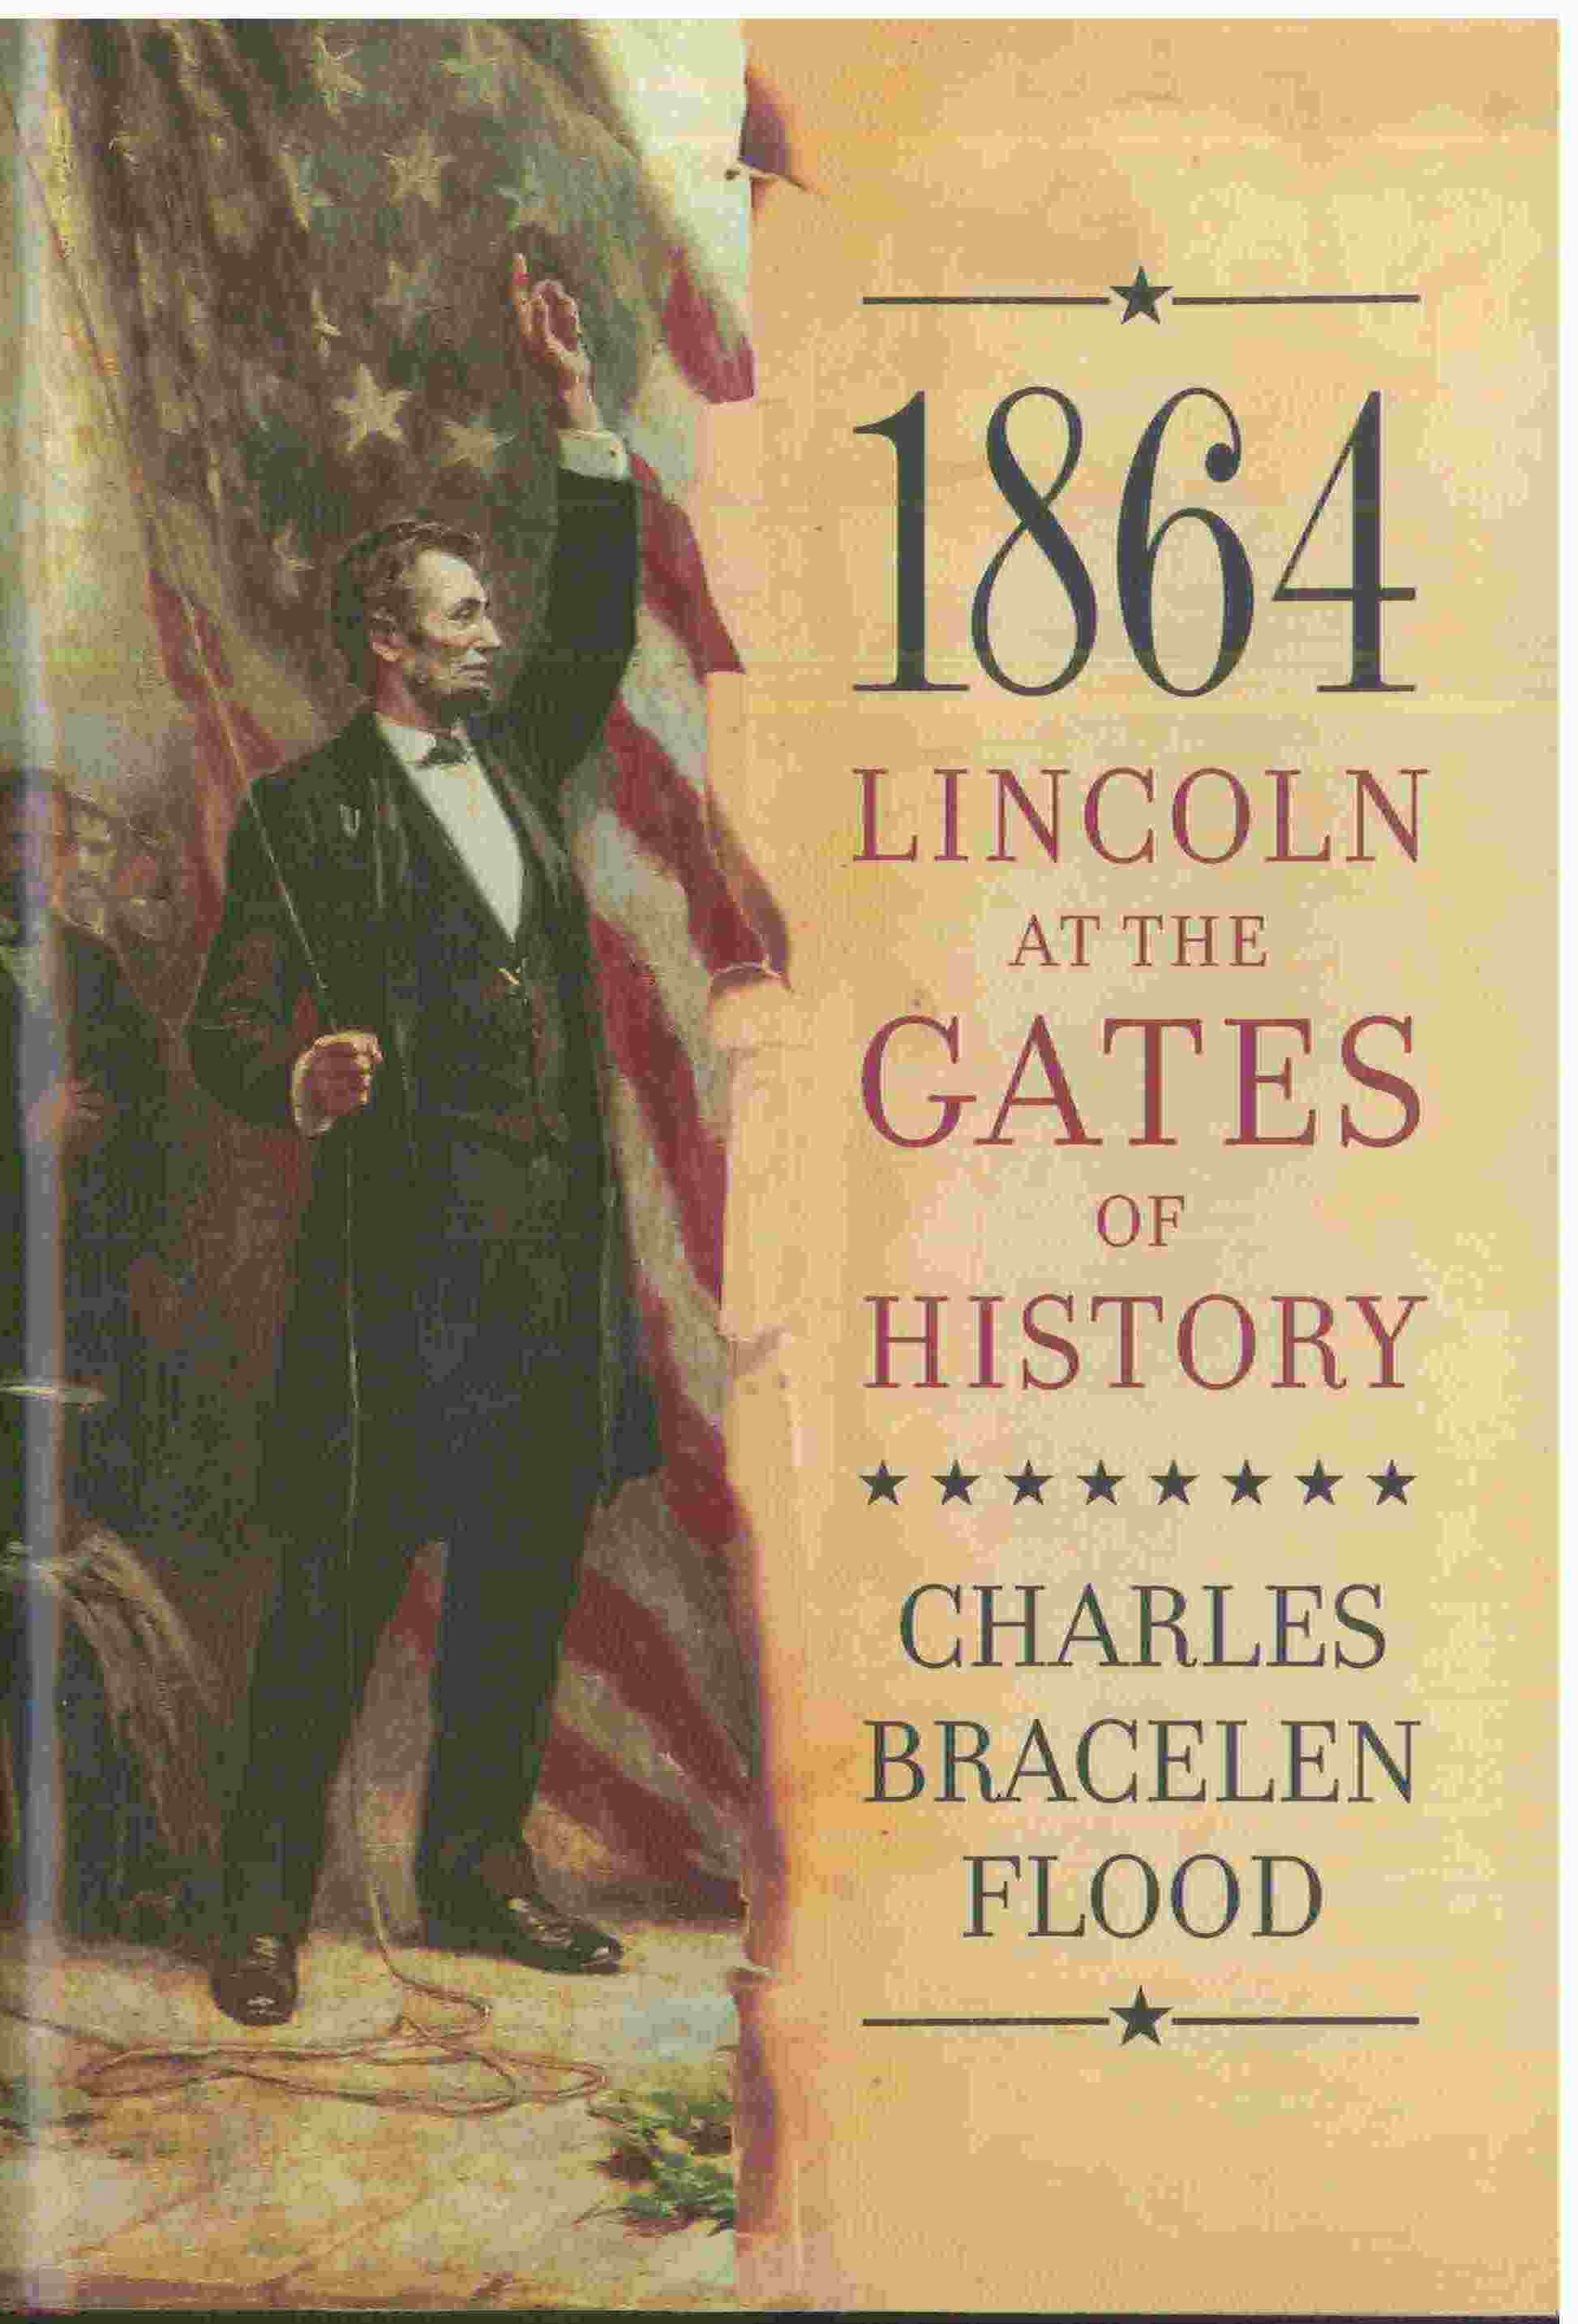 121864_Lincoln_at_the_Gates_of_History.jpg